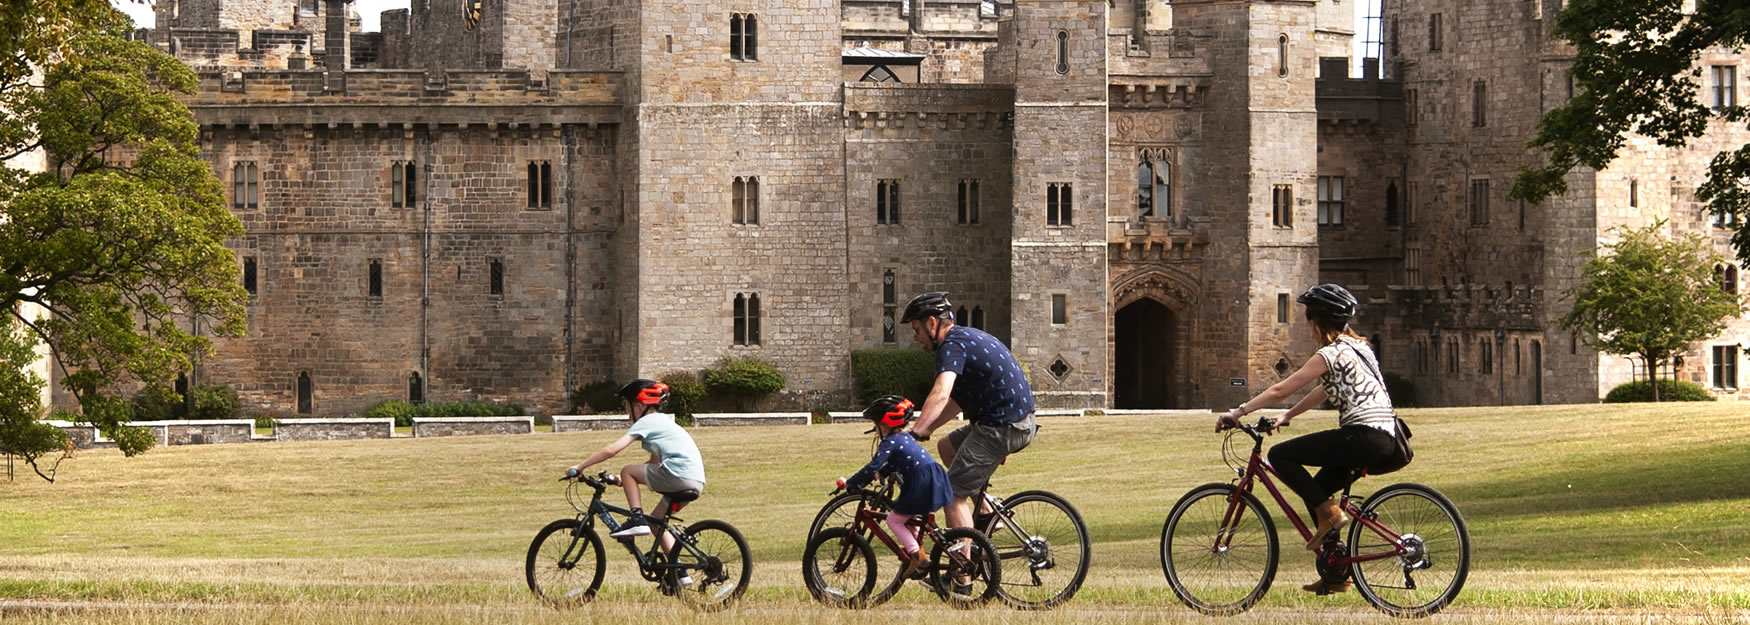 Raby Castle family on bikes